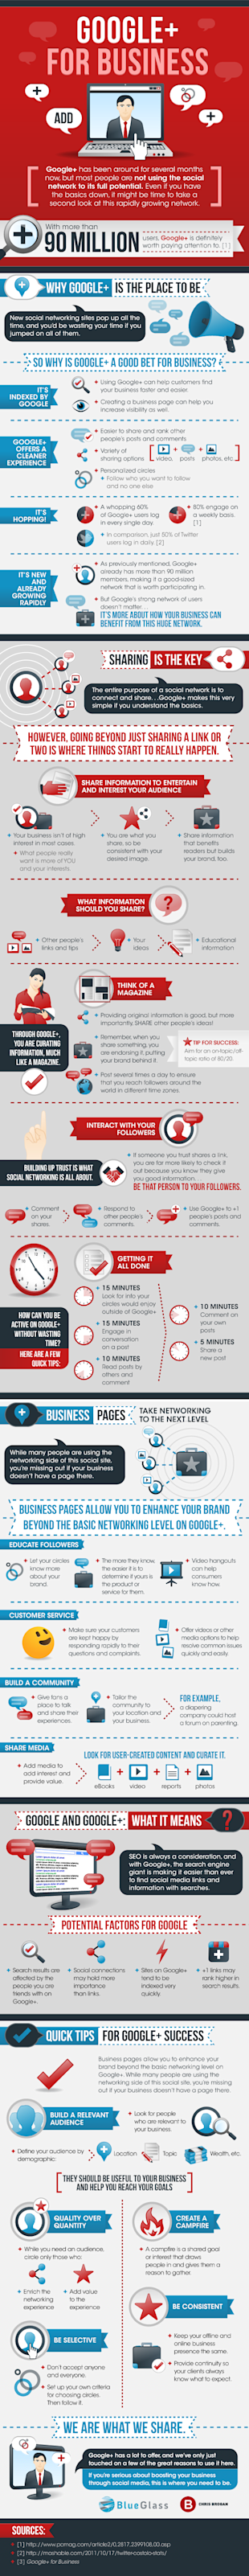 How To Use Google+ for Business (Infographic) image How to Use Google Plus for Business